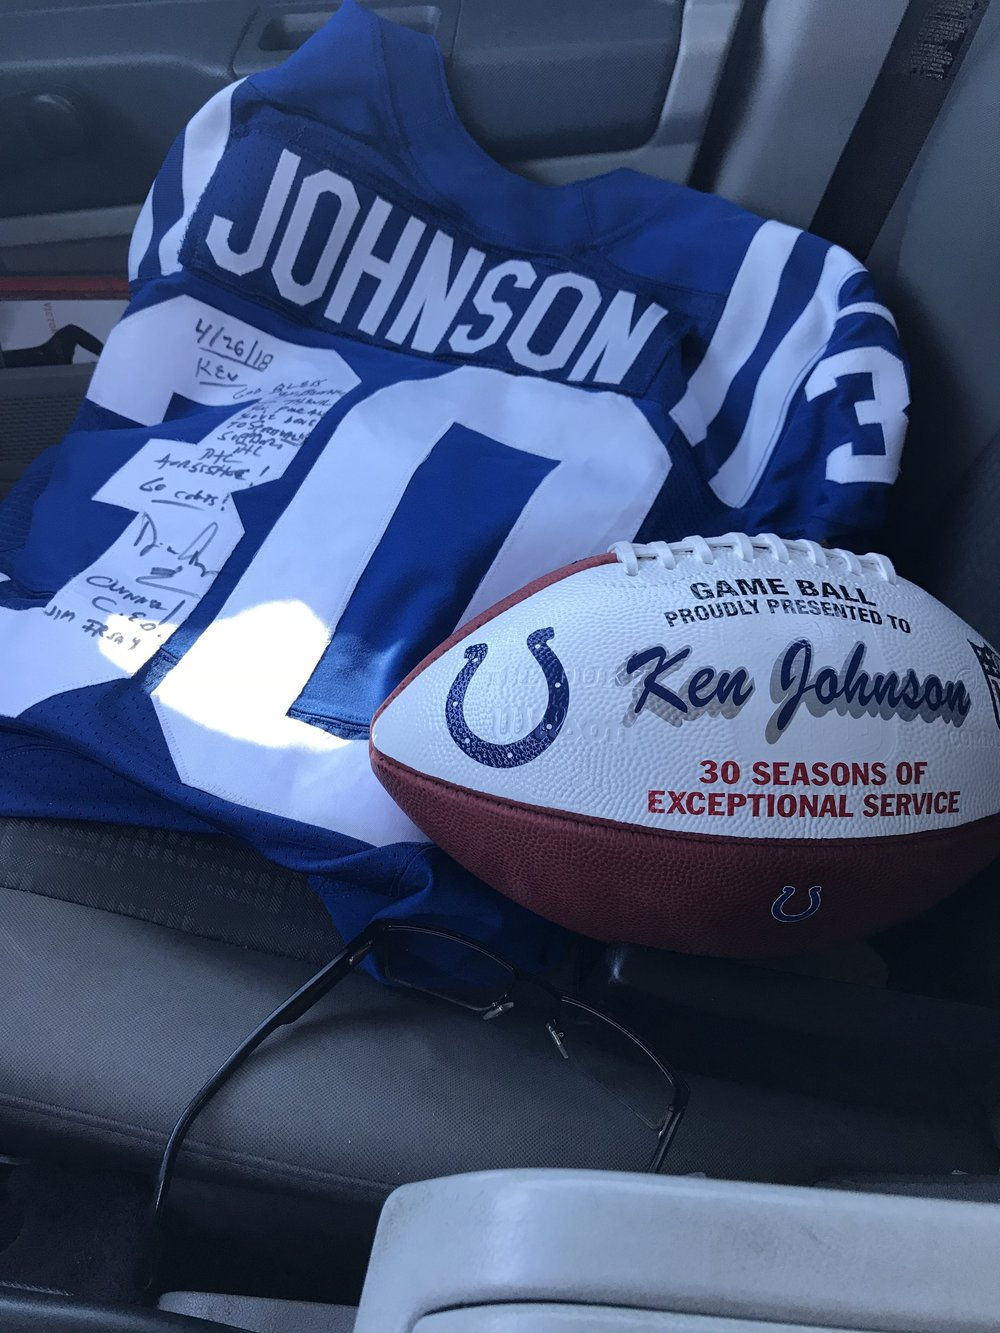 30 seasons as the Colts Chap! - A True Motivator of Men